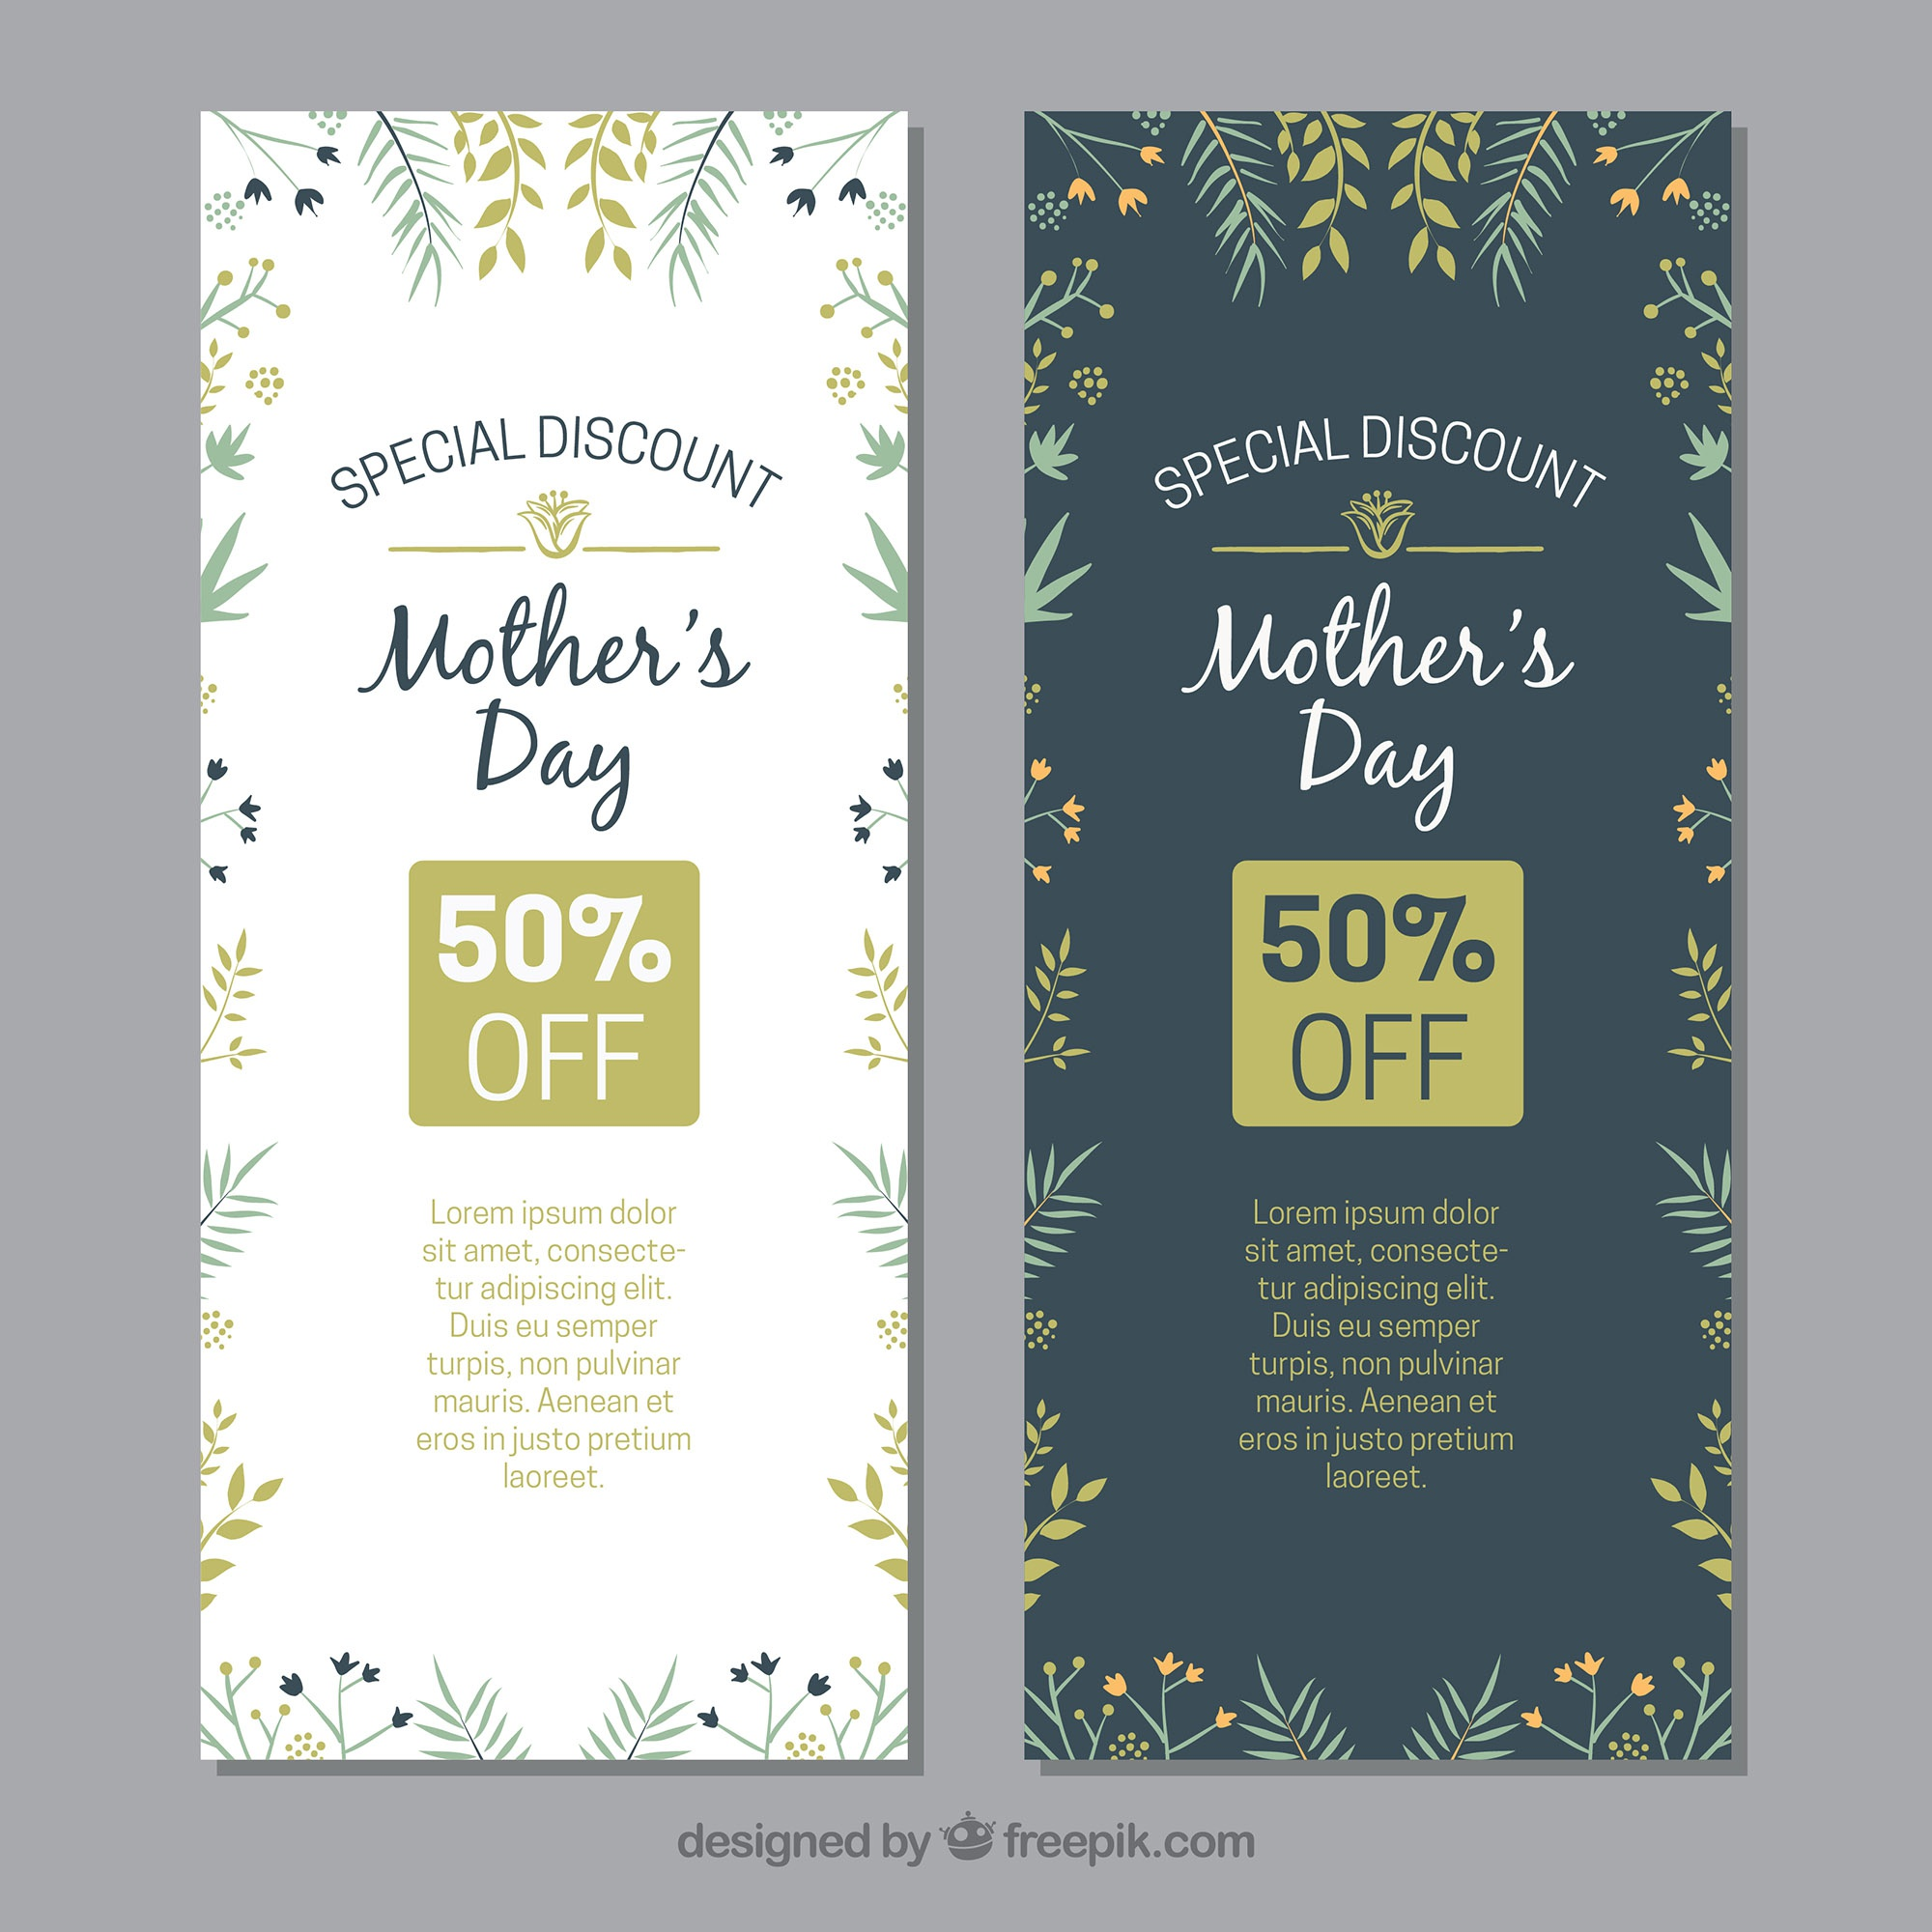 Mother's day floral banners with discounts